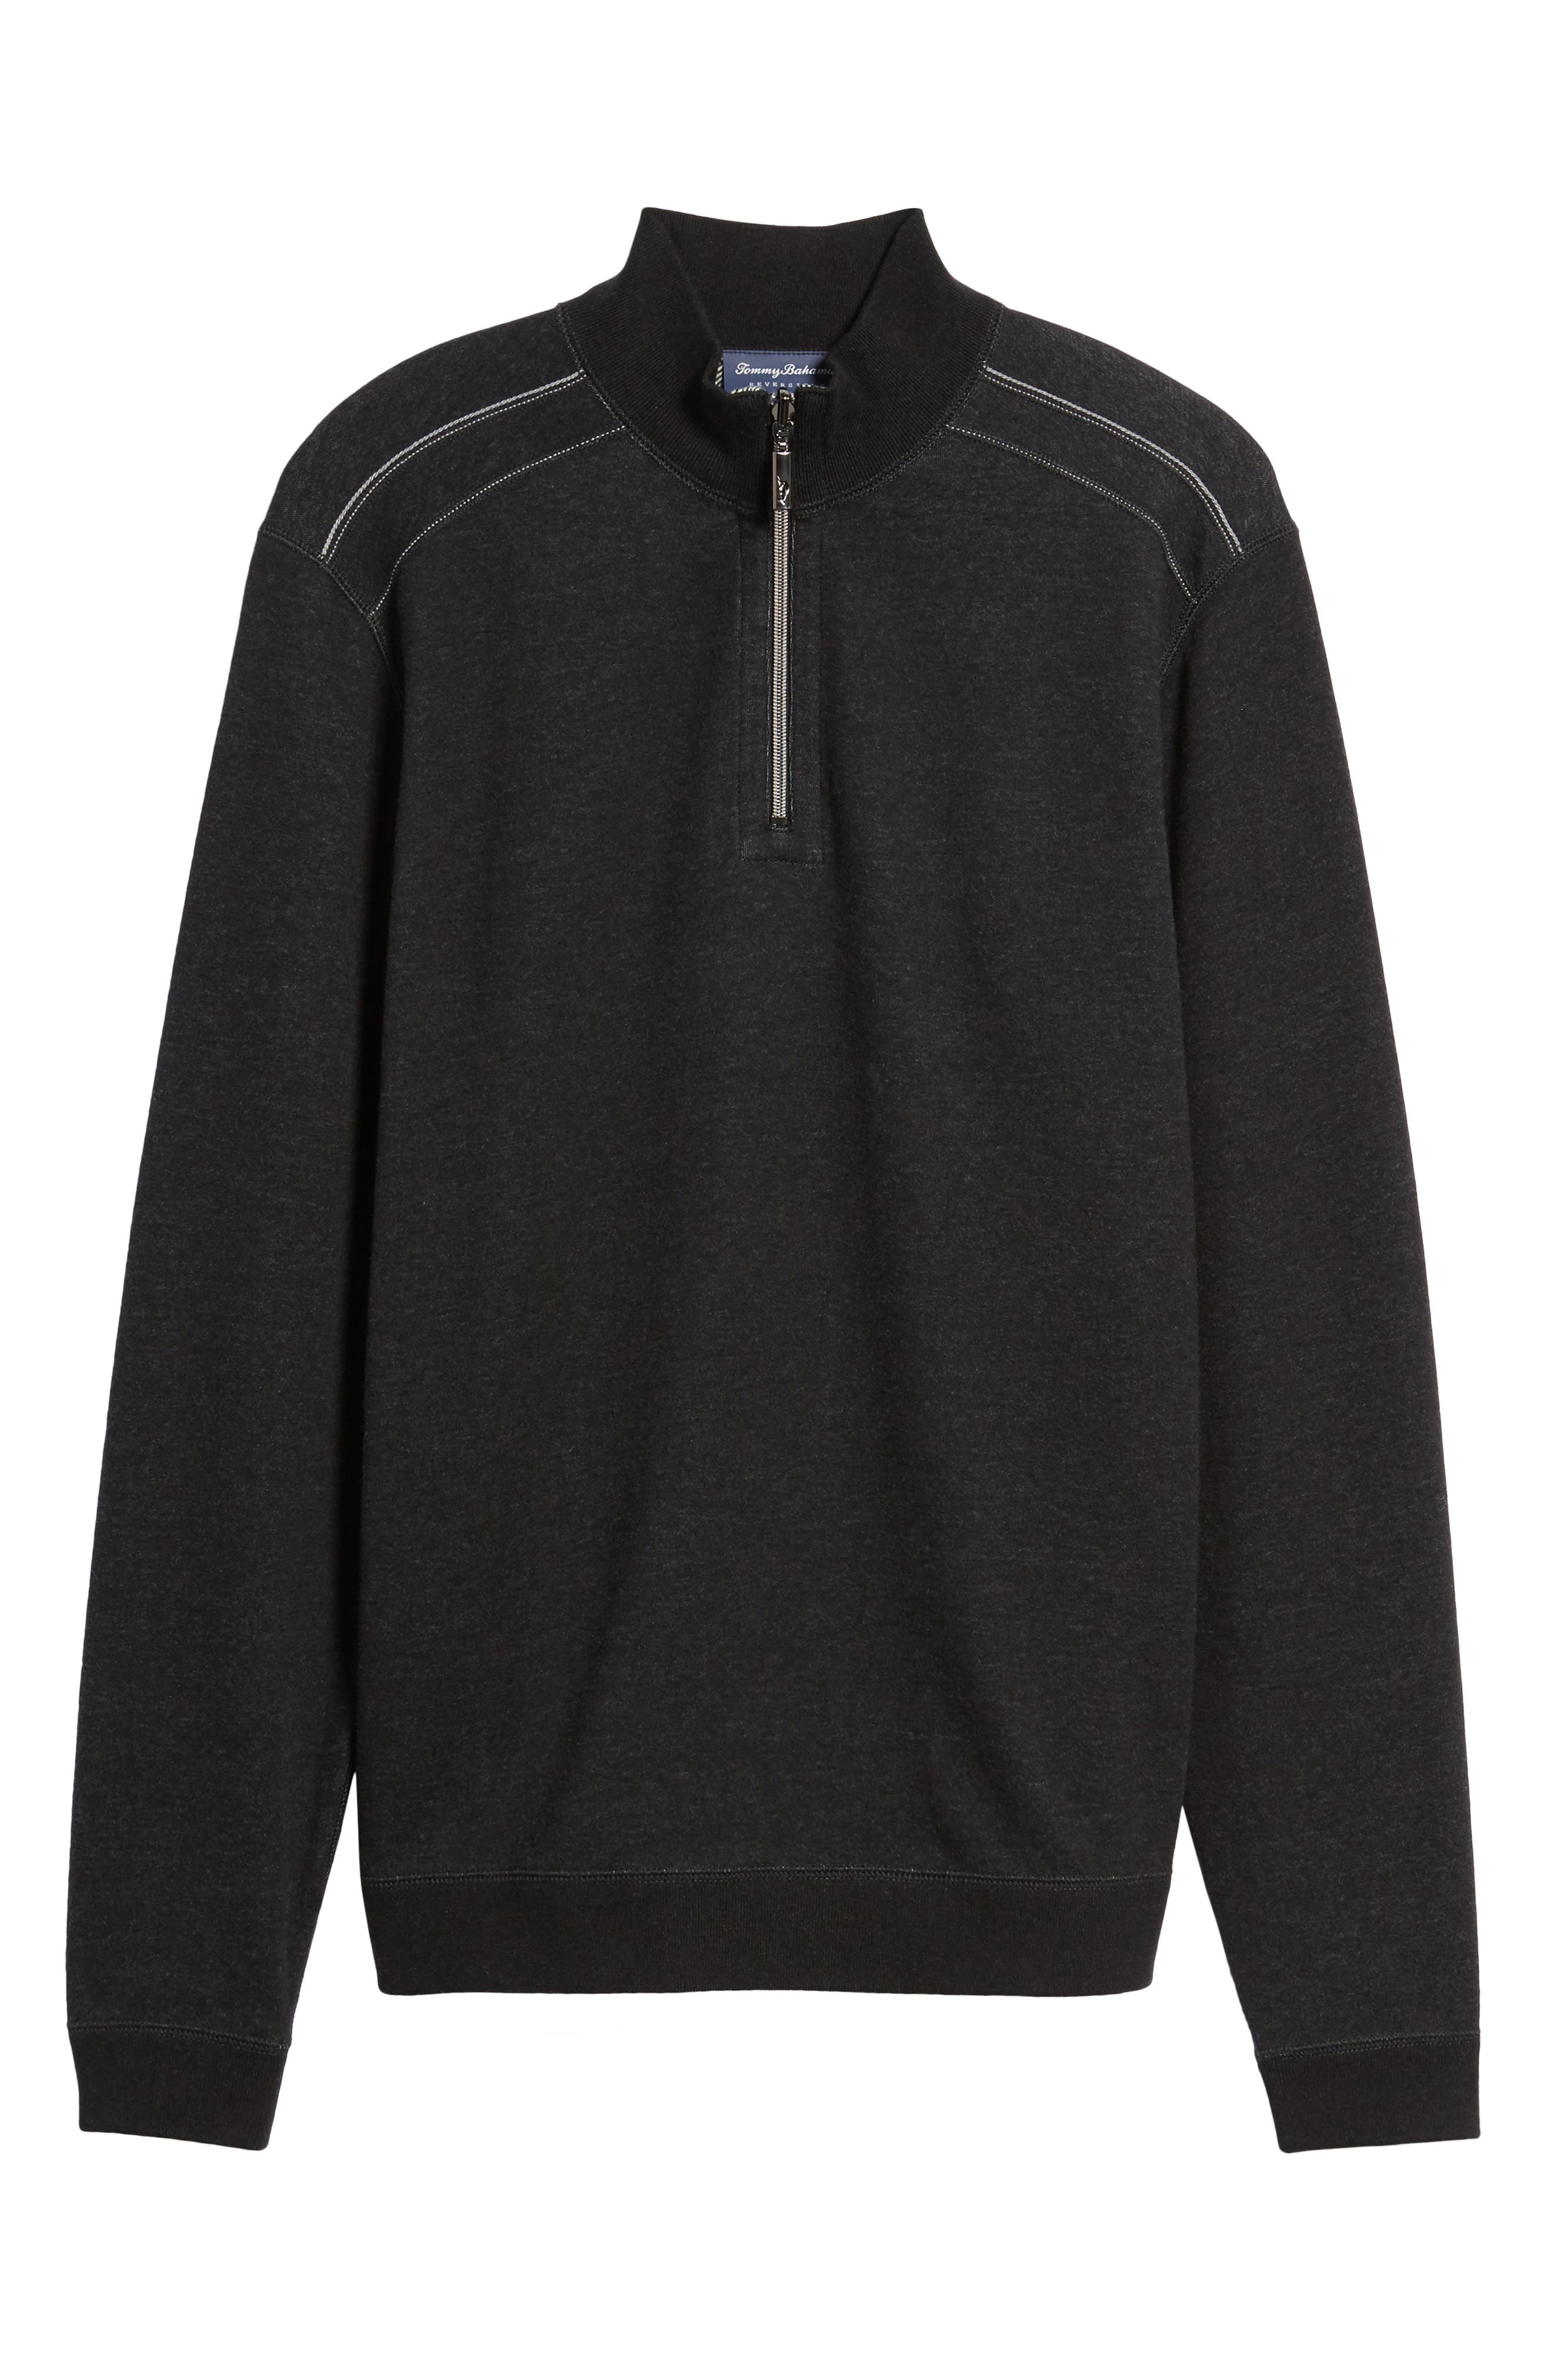 Flip Drive Quarter Zip Pullover,                             Alternate thumbnail 5, color,                             Black